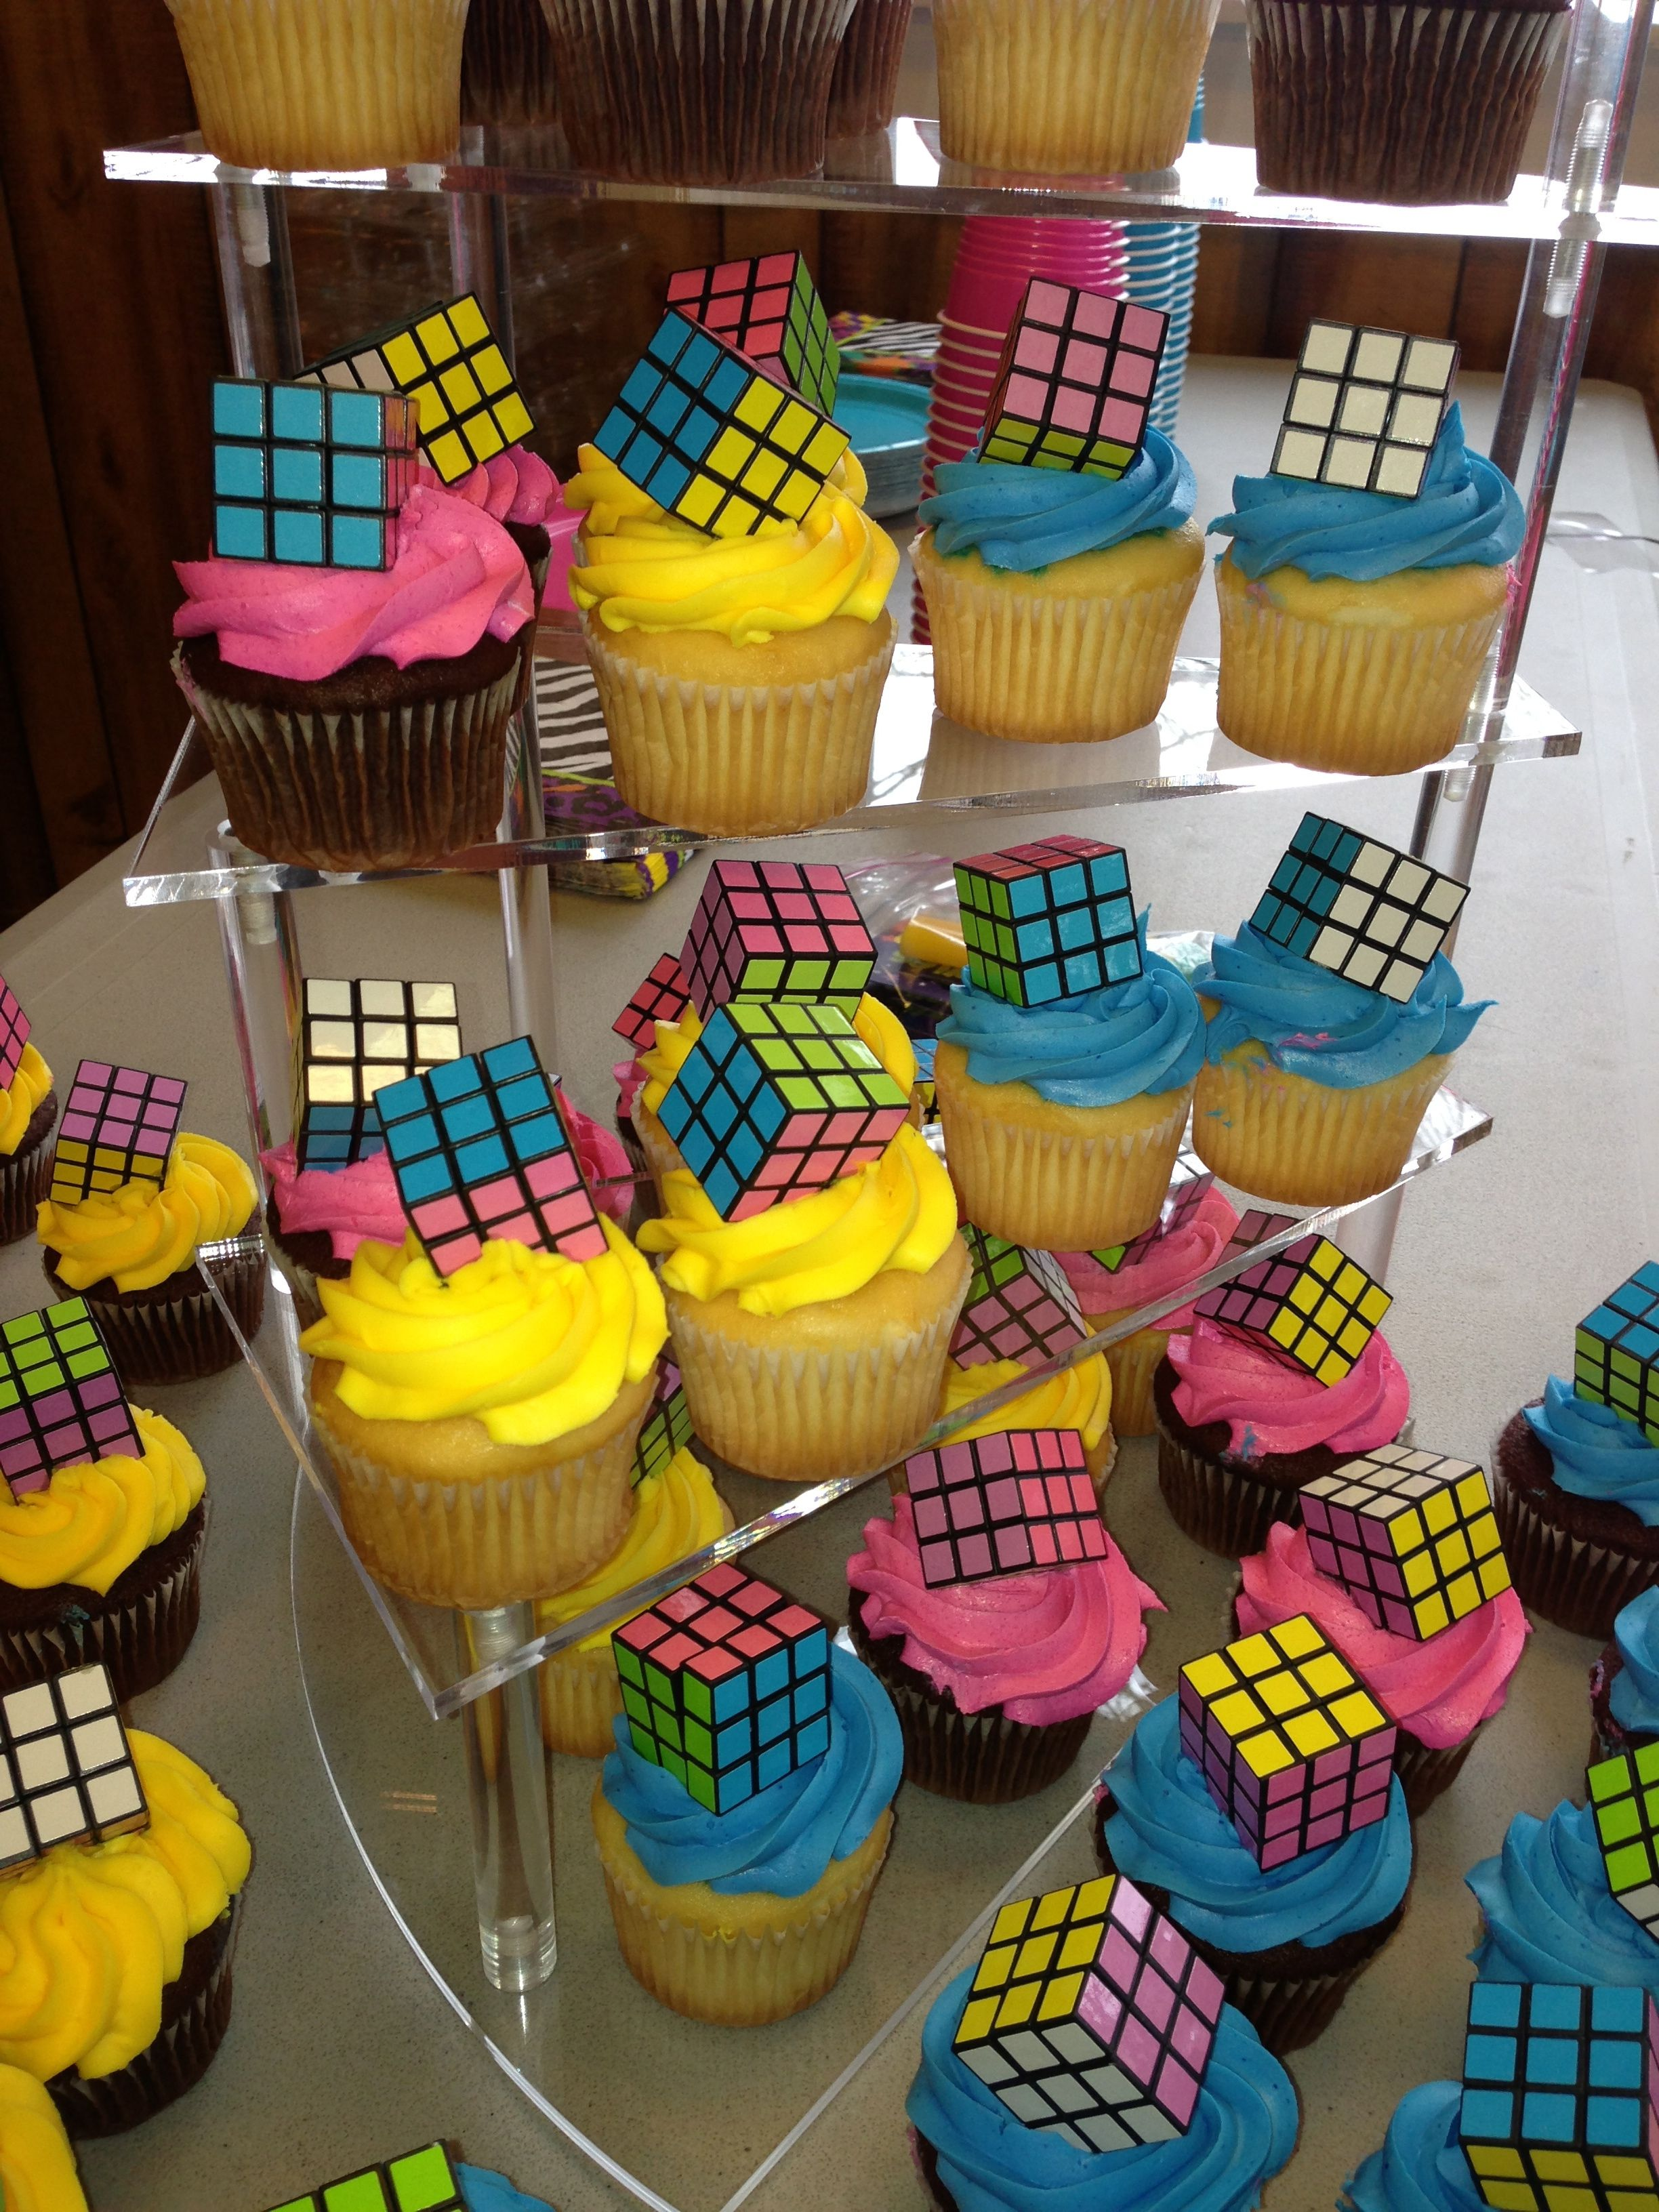 80's party. Cupcakes from grocery store. Rubiks from Oriental